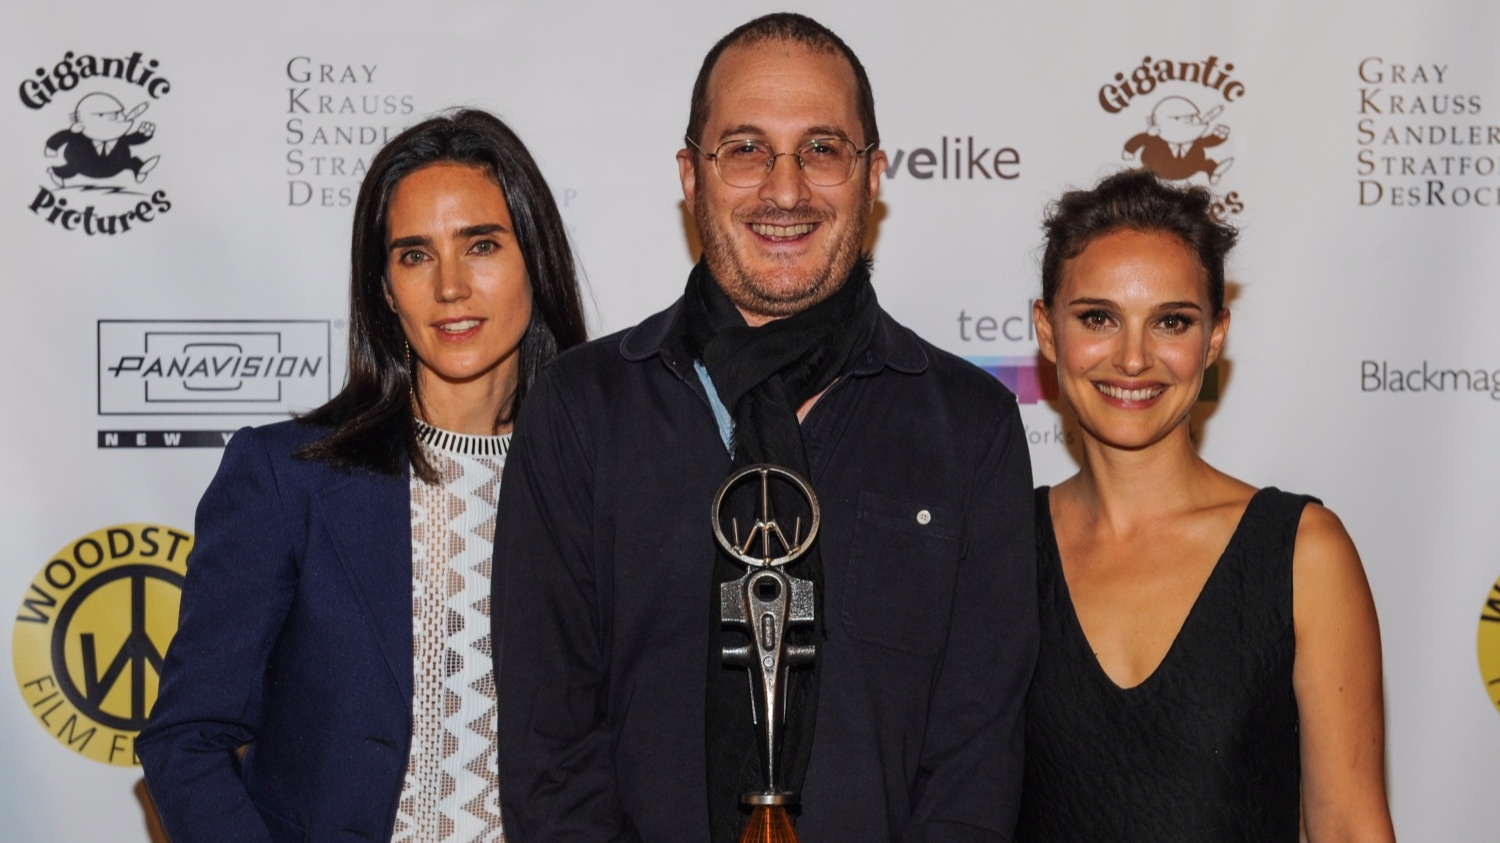 Jennifer Connelly and Natalie Portman present Darren Aronofsky with the Honorary Maverick Award at the 2014 Woodstock Film Festival.